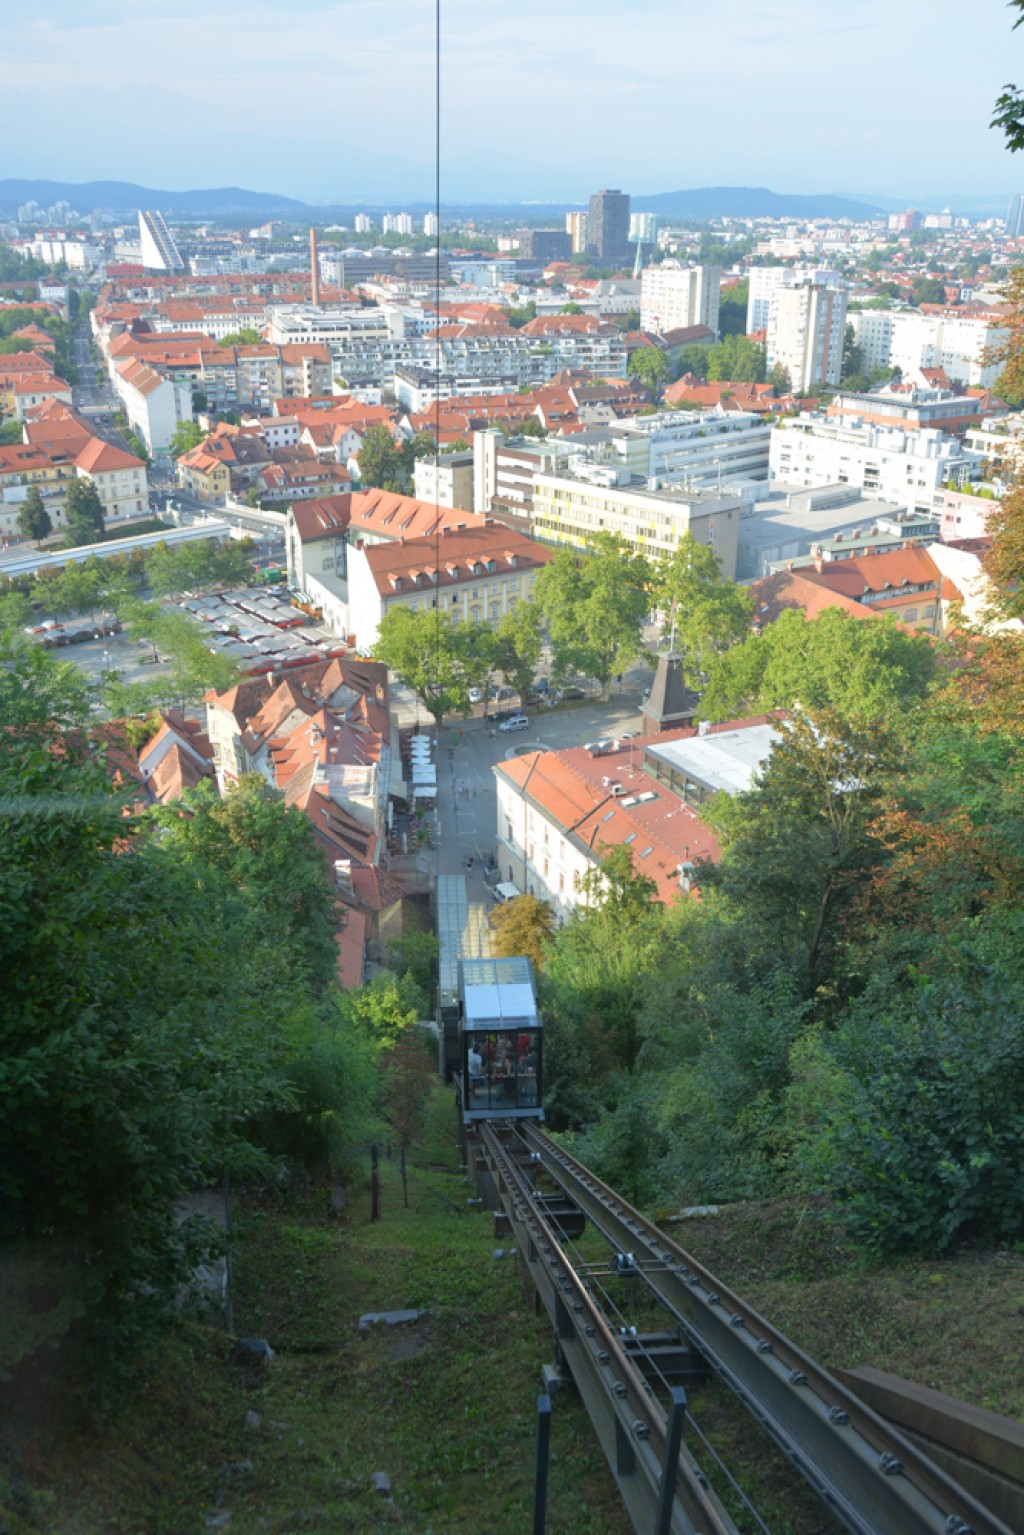 Taking the funicular back down